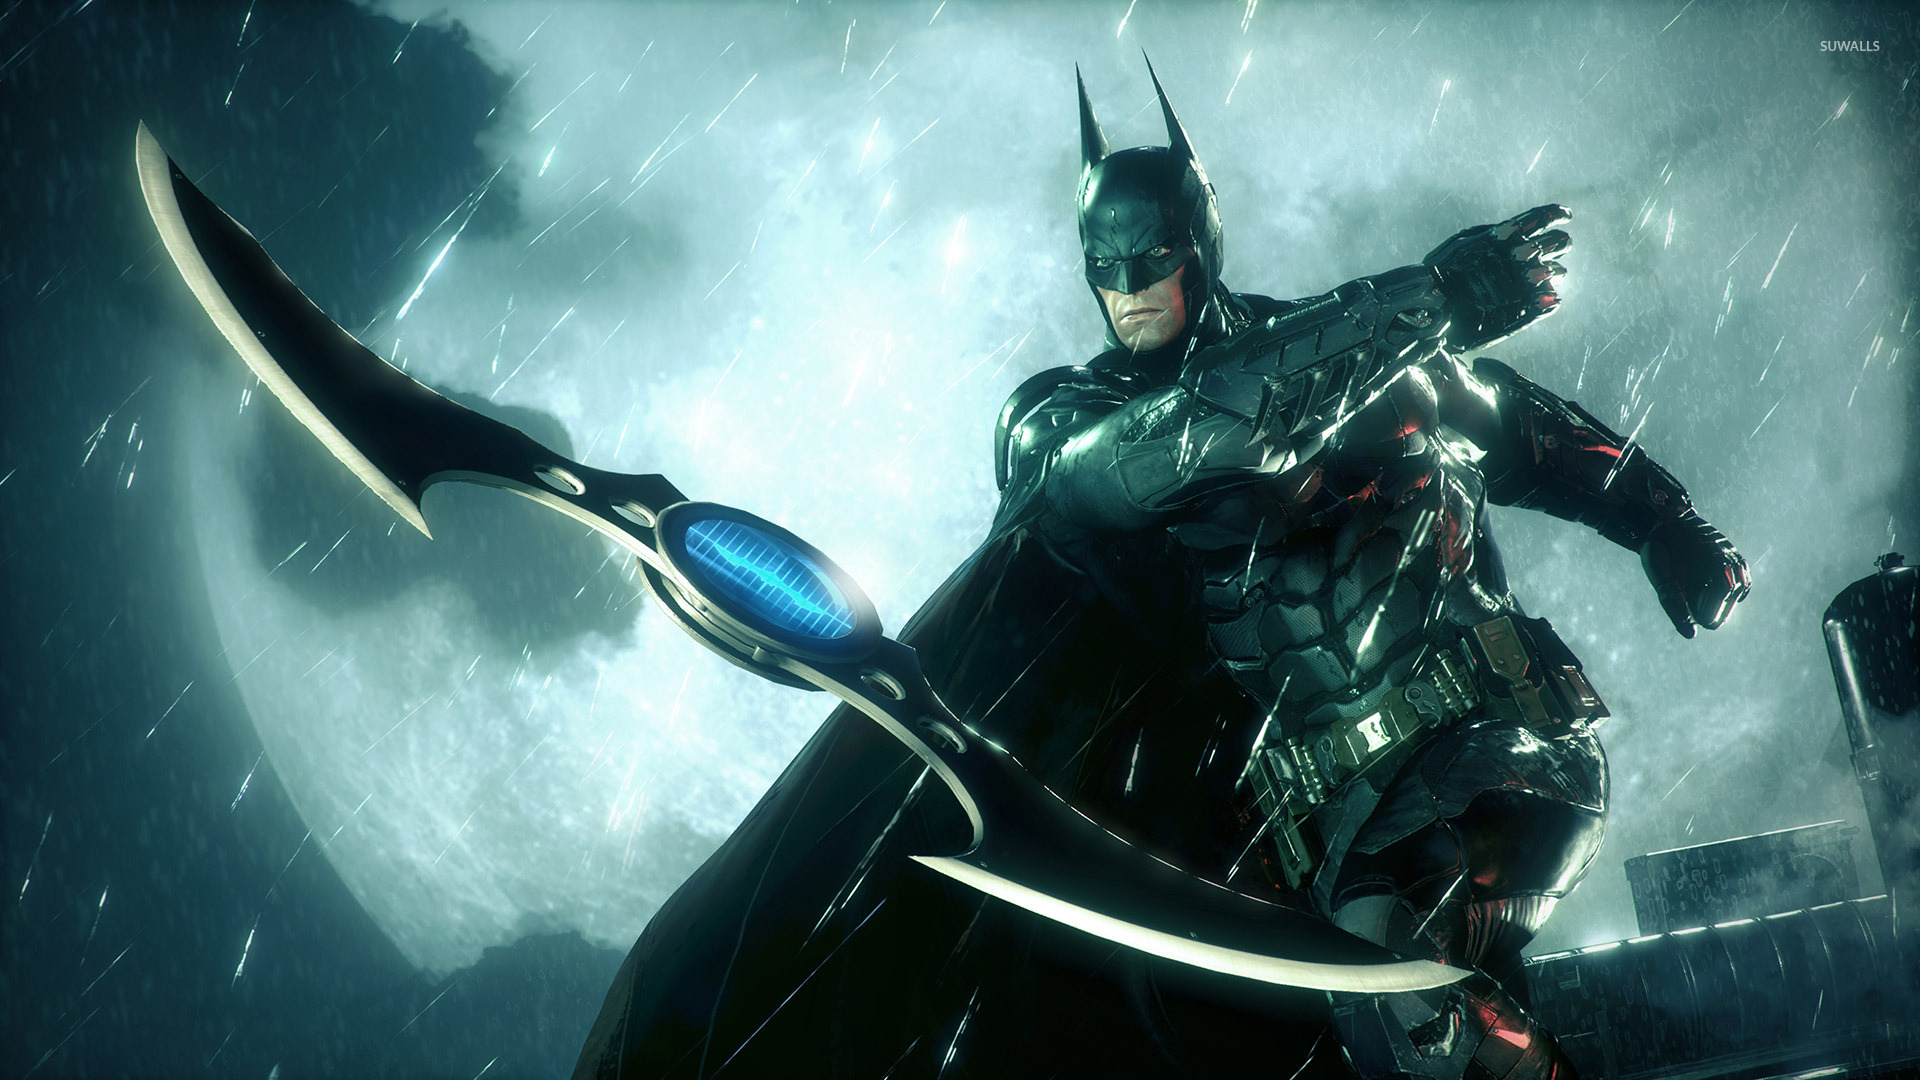 Batman Arkham Knight wallpaper   Game wallpapers   32220 1366x768